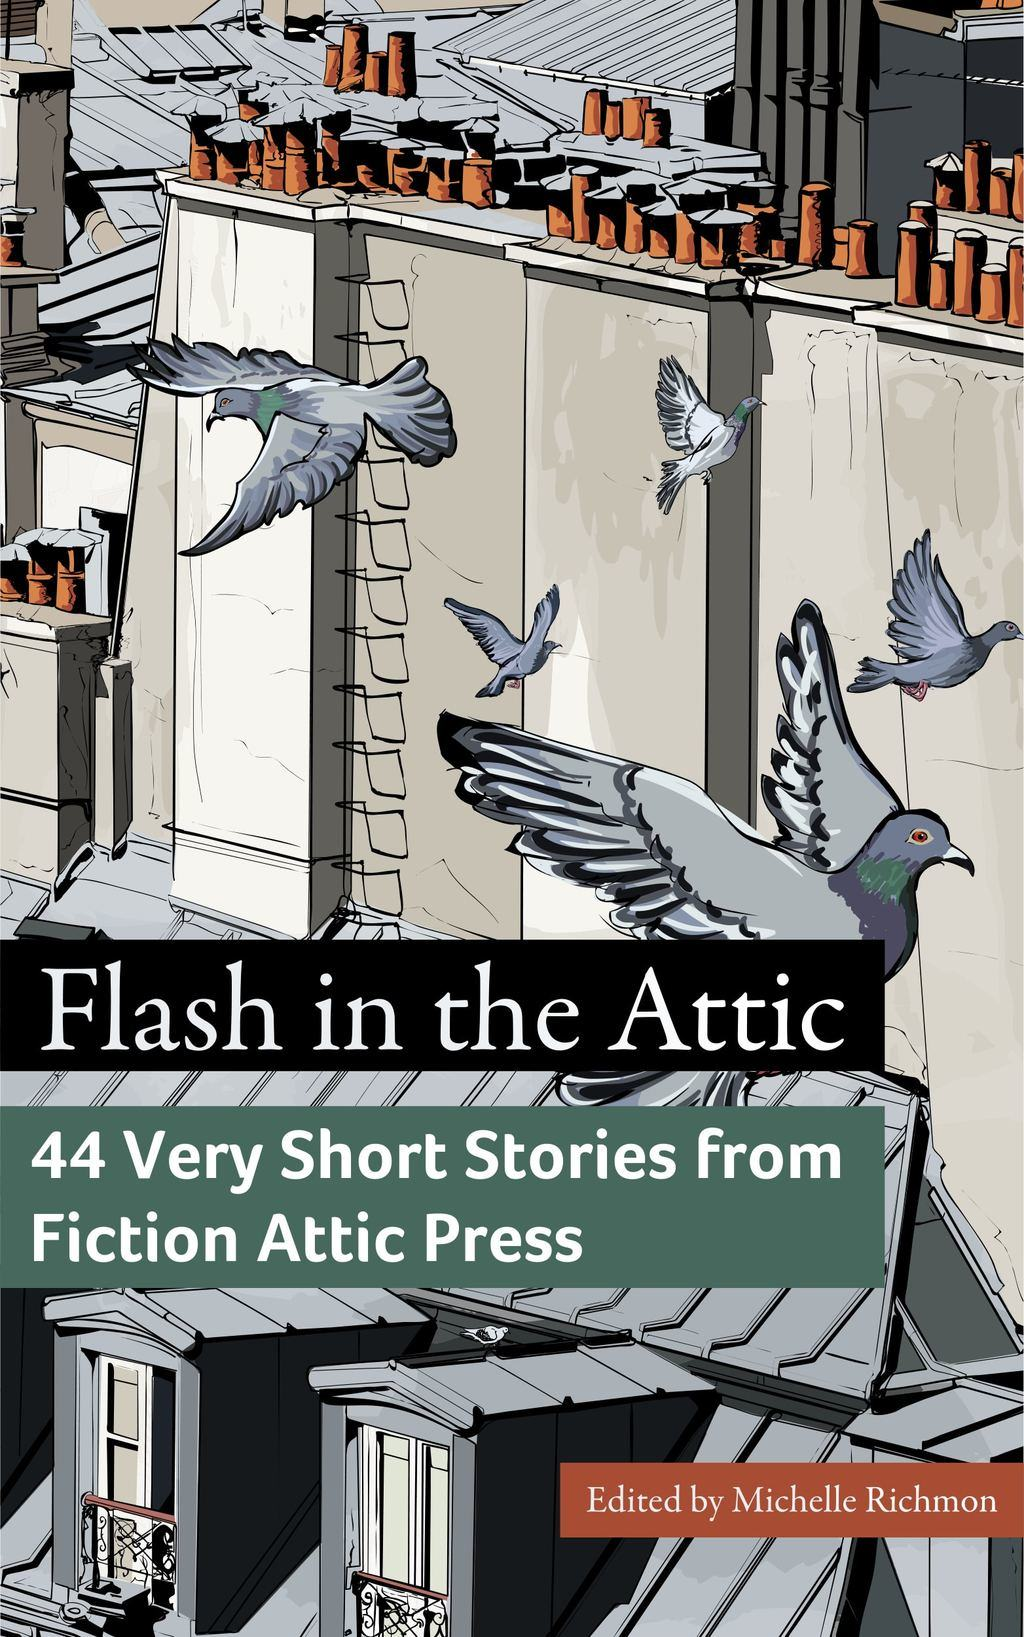 call for submissions essays stories novels fiction attic press call for submissions flash fiction